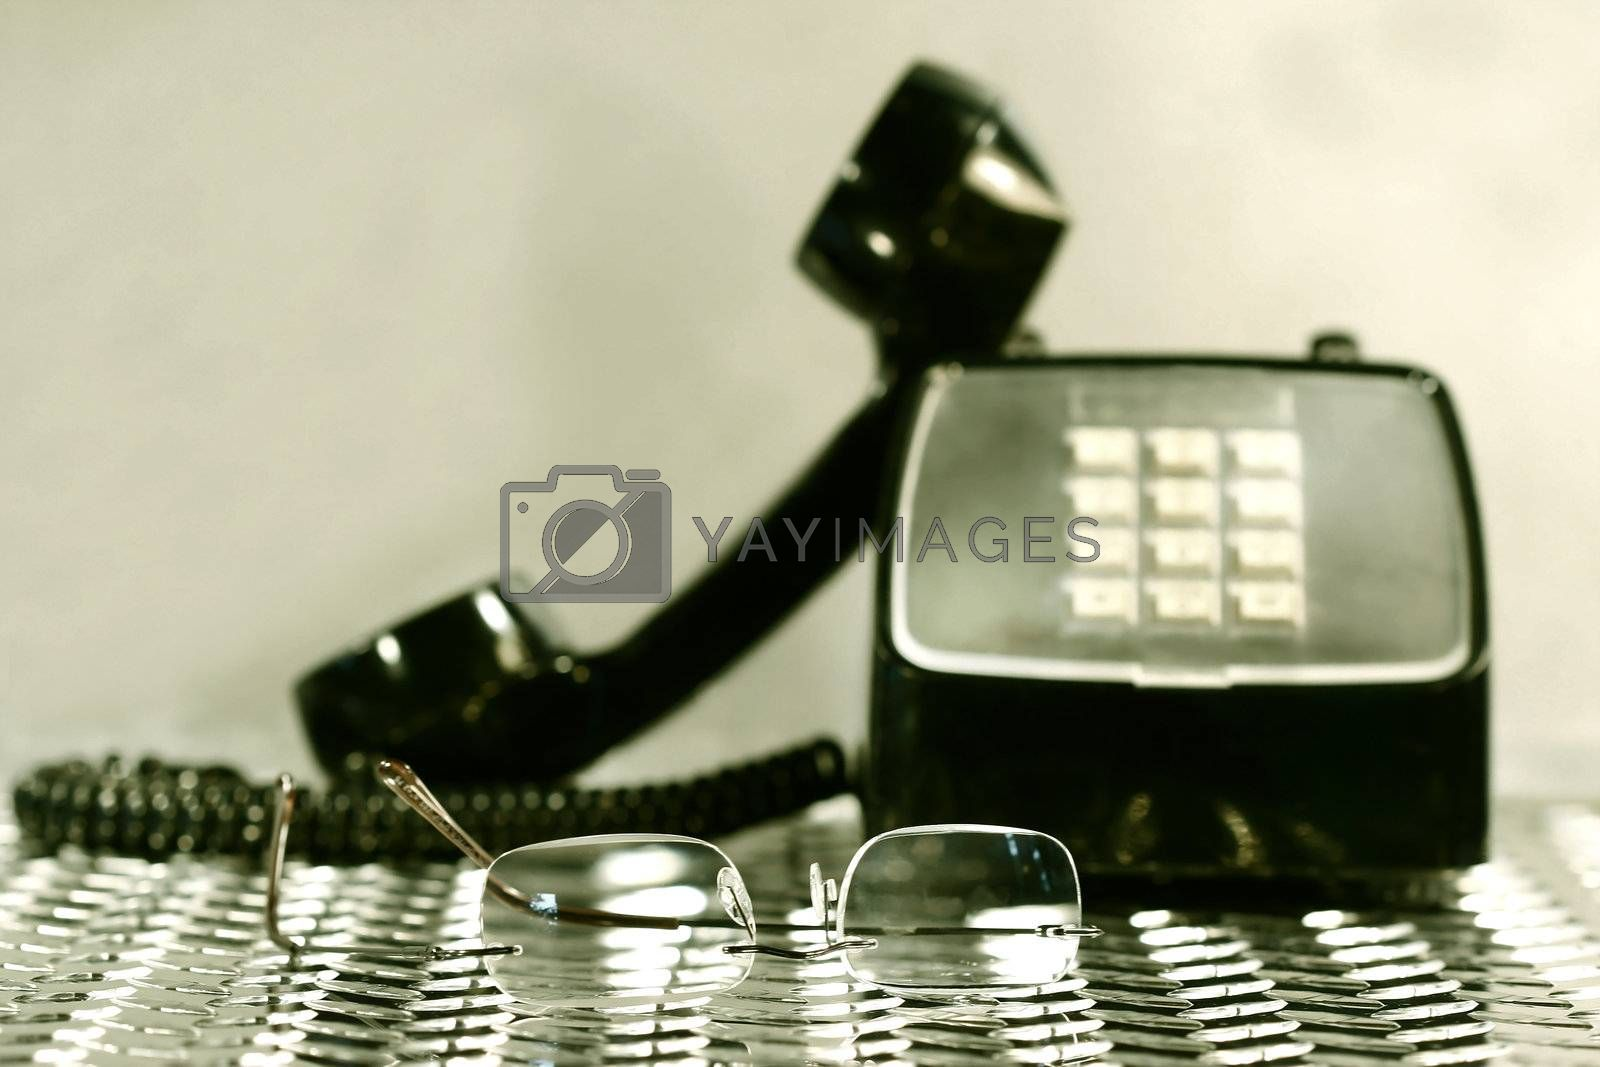 Black vintage telephone with a pair of reading glasses